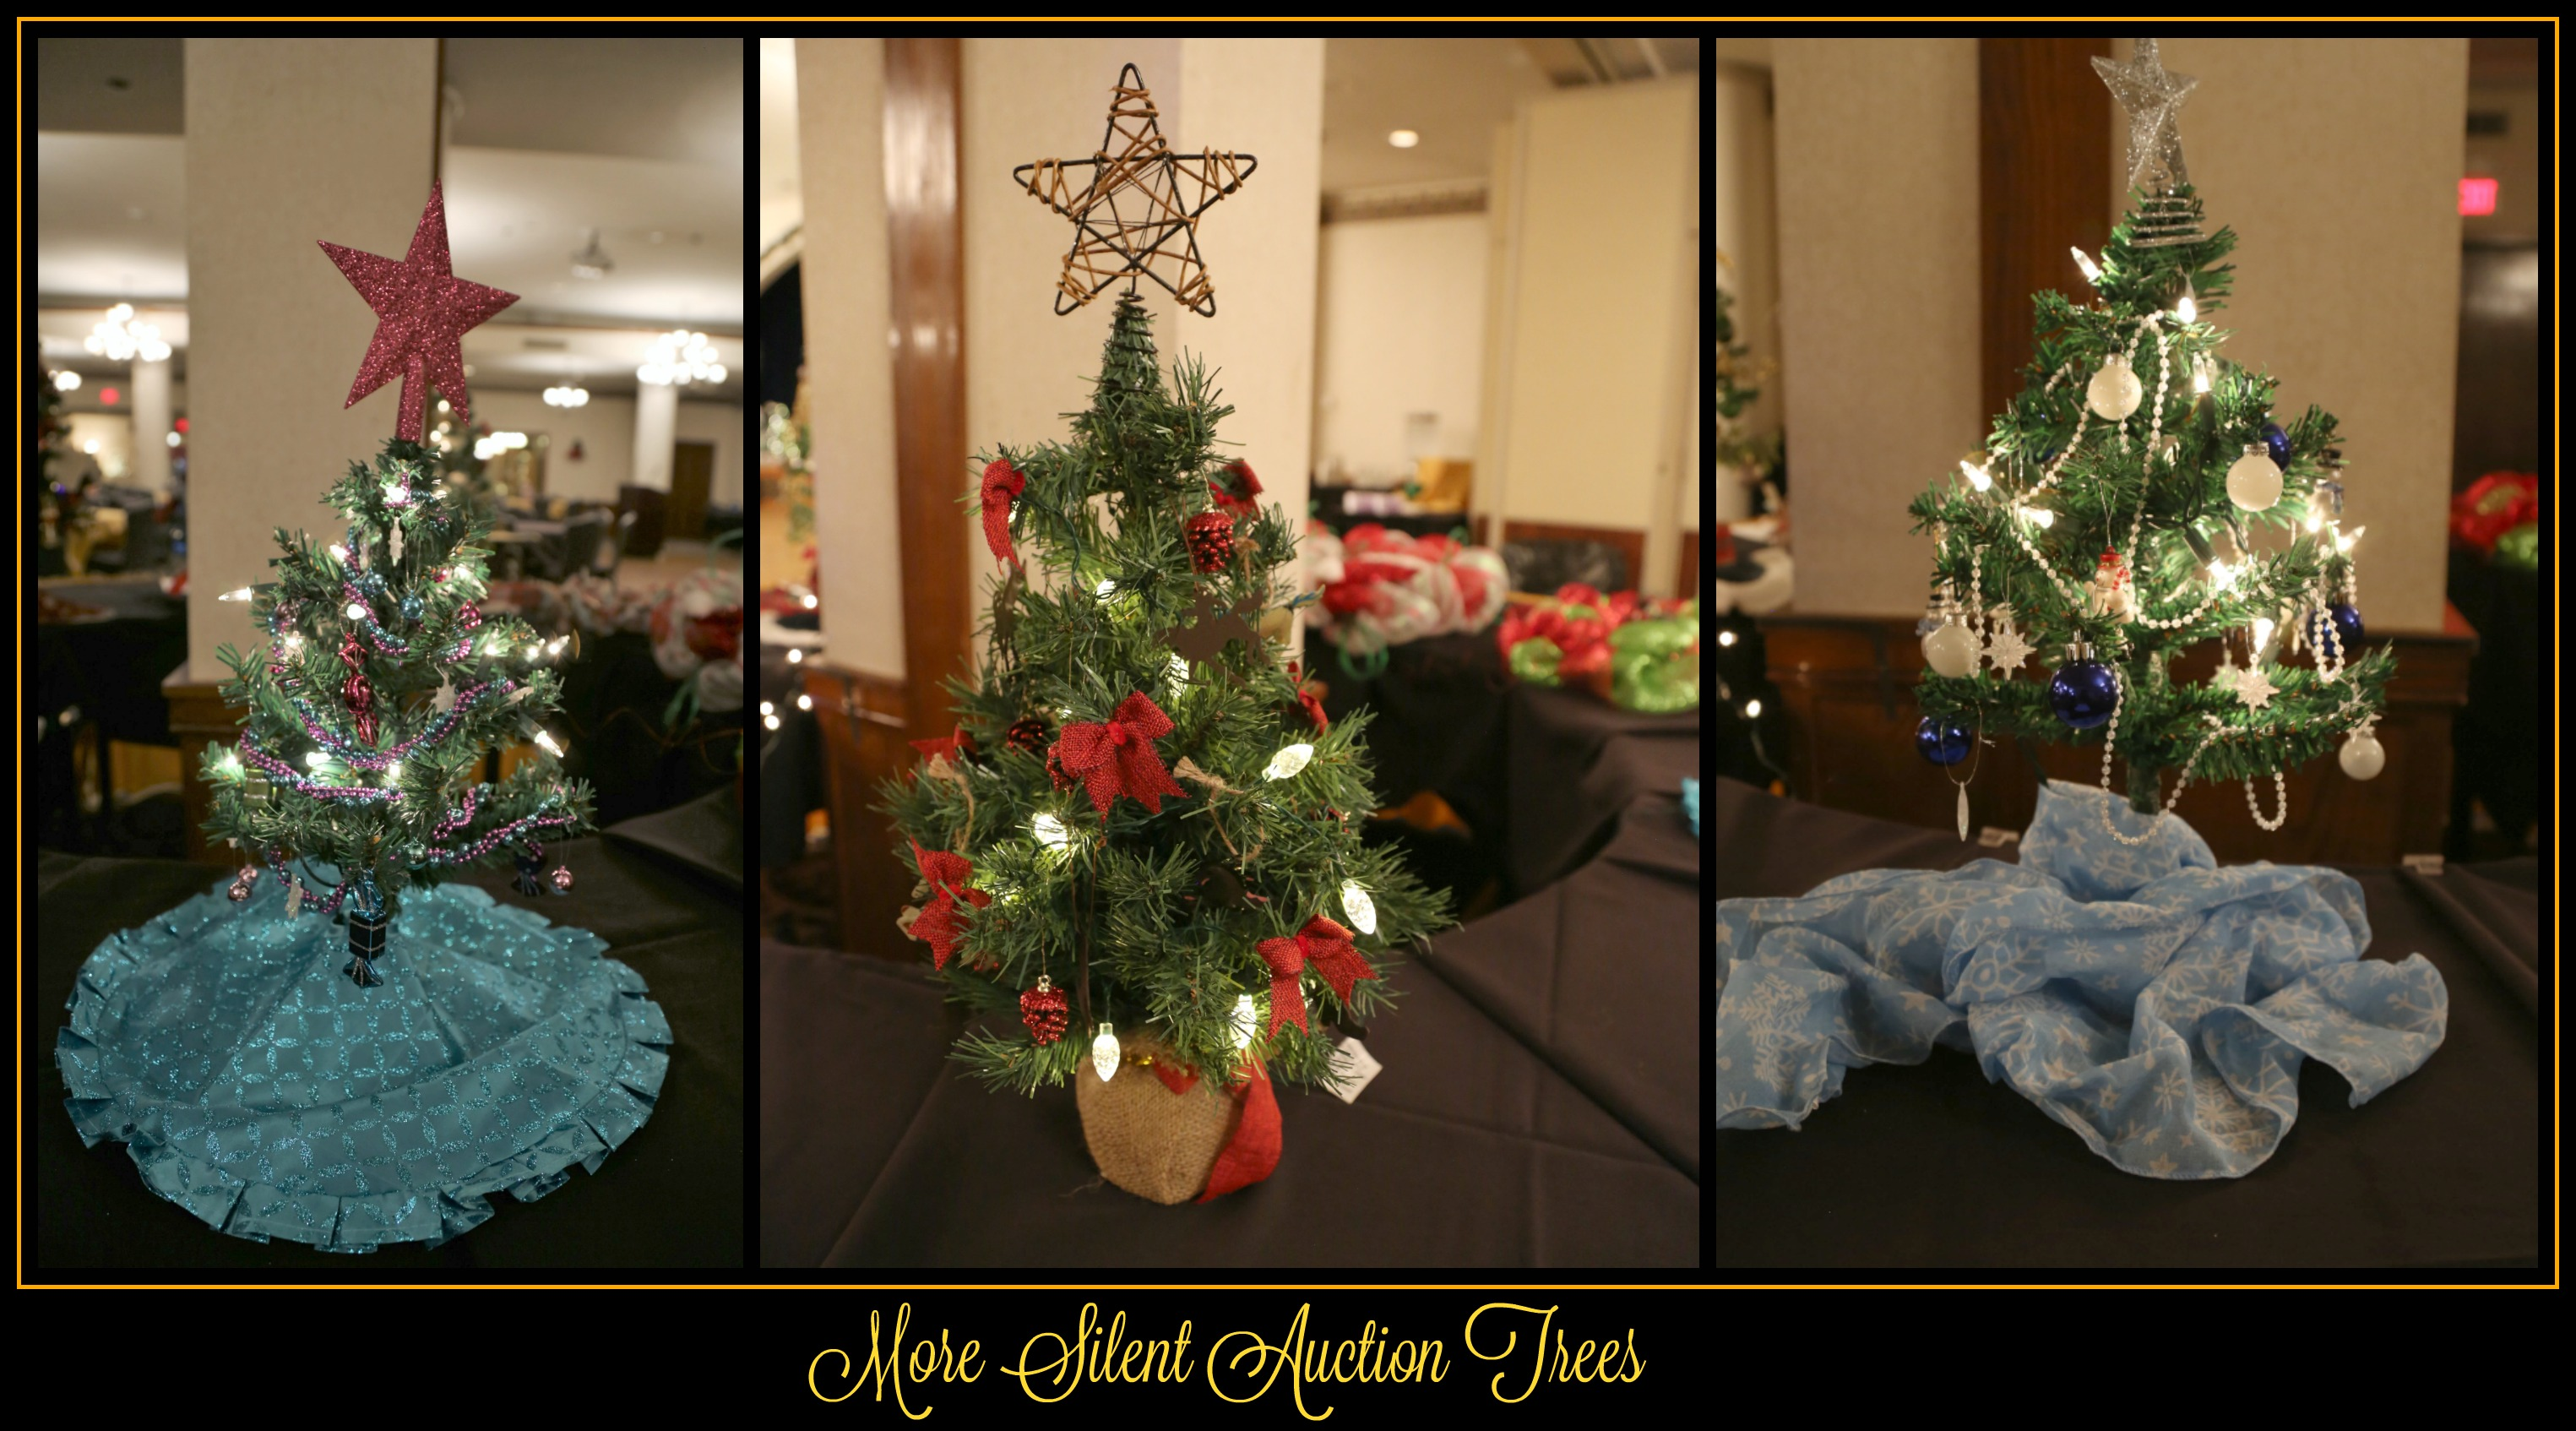 Silent Auction Trees 2